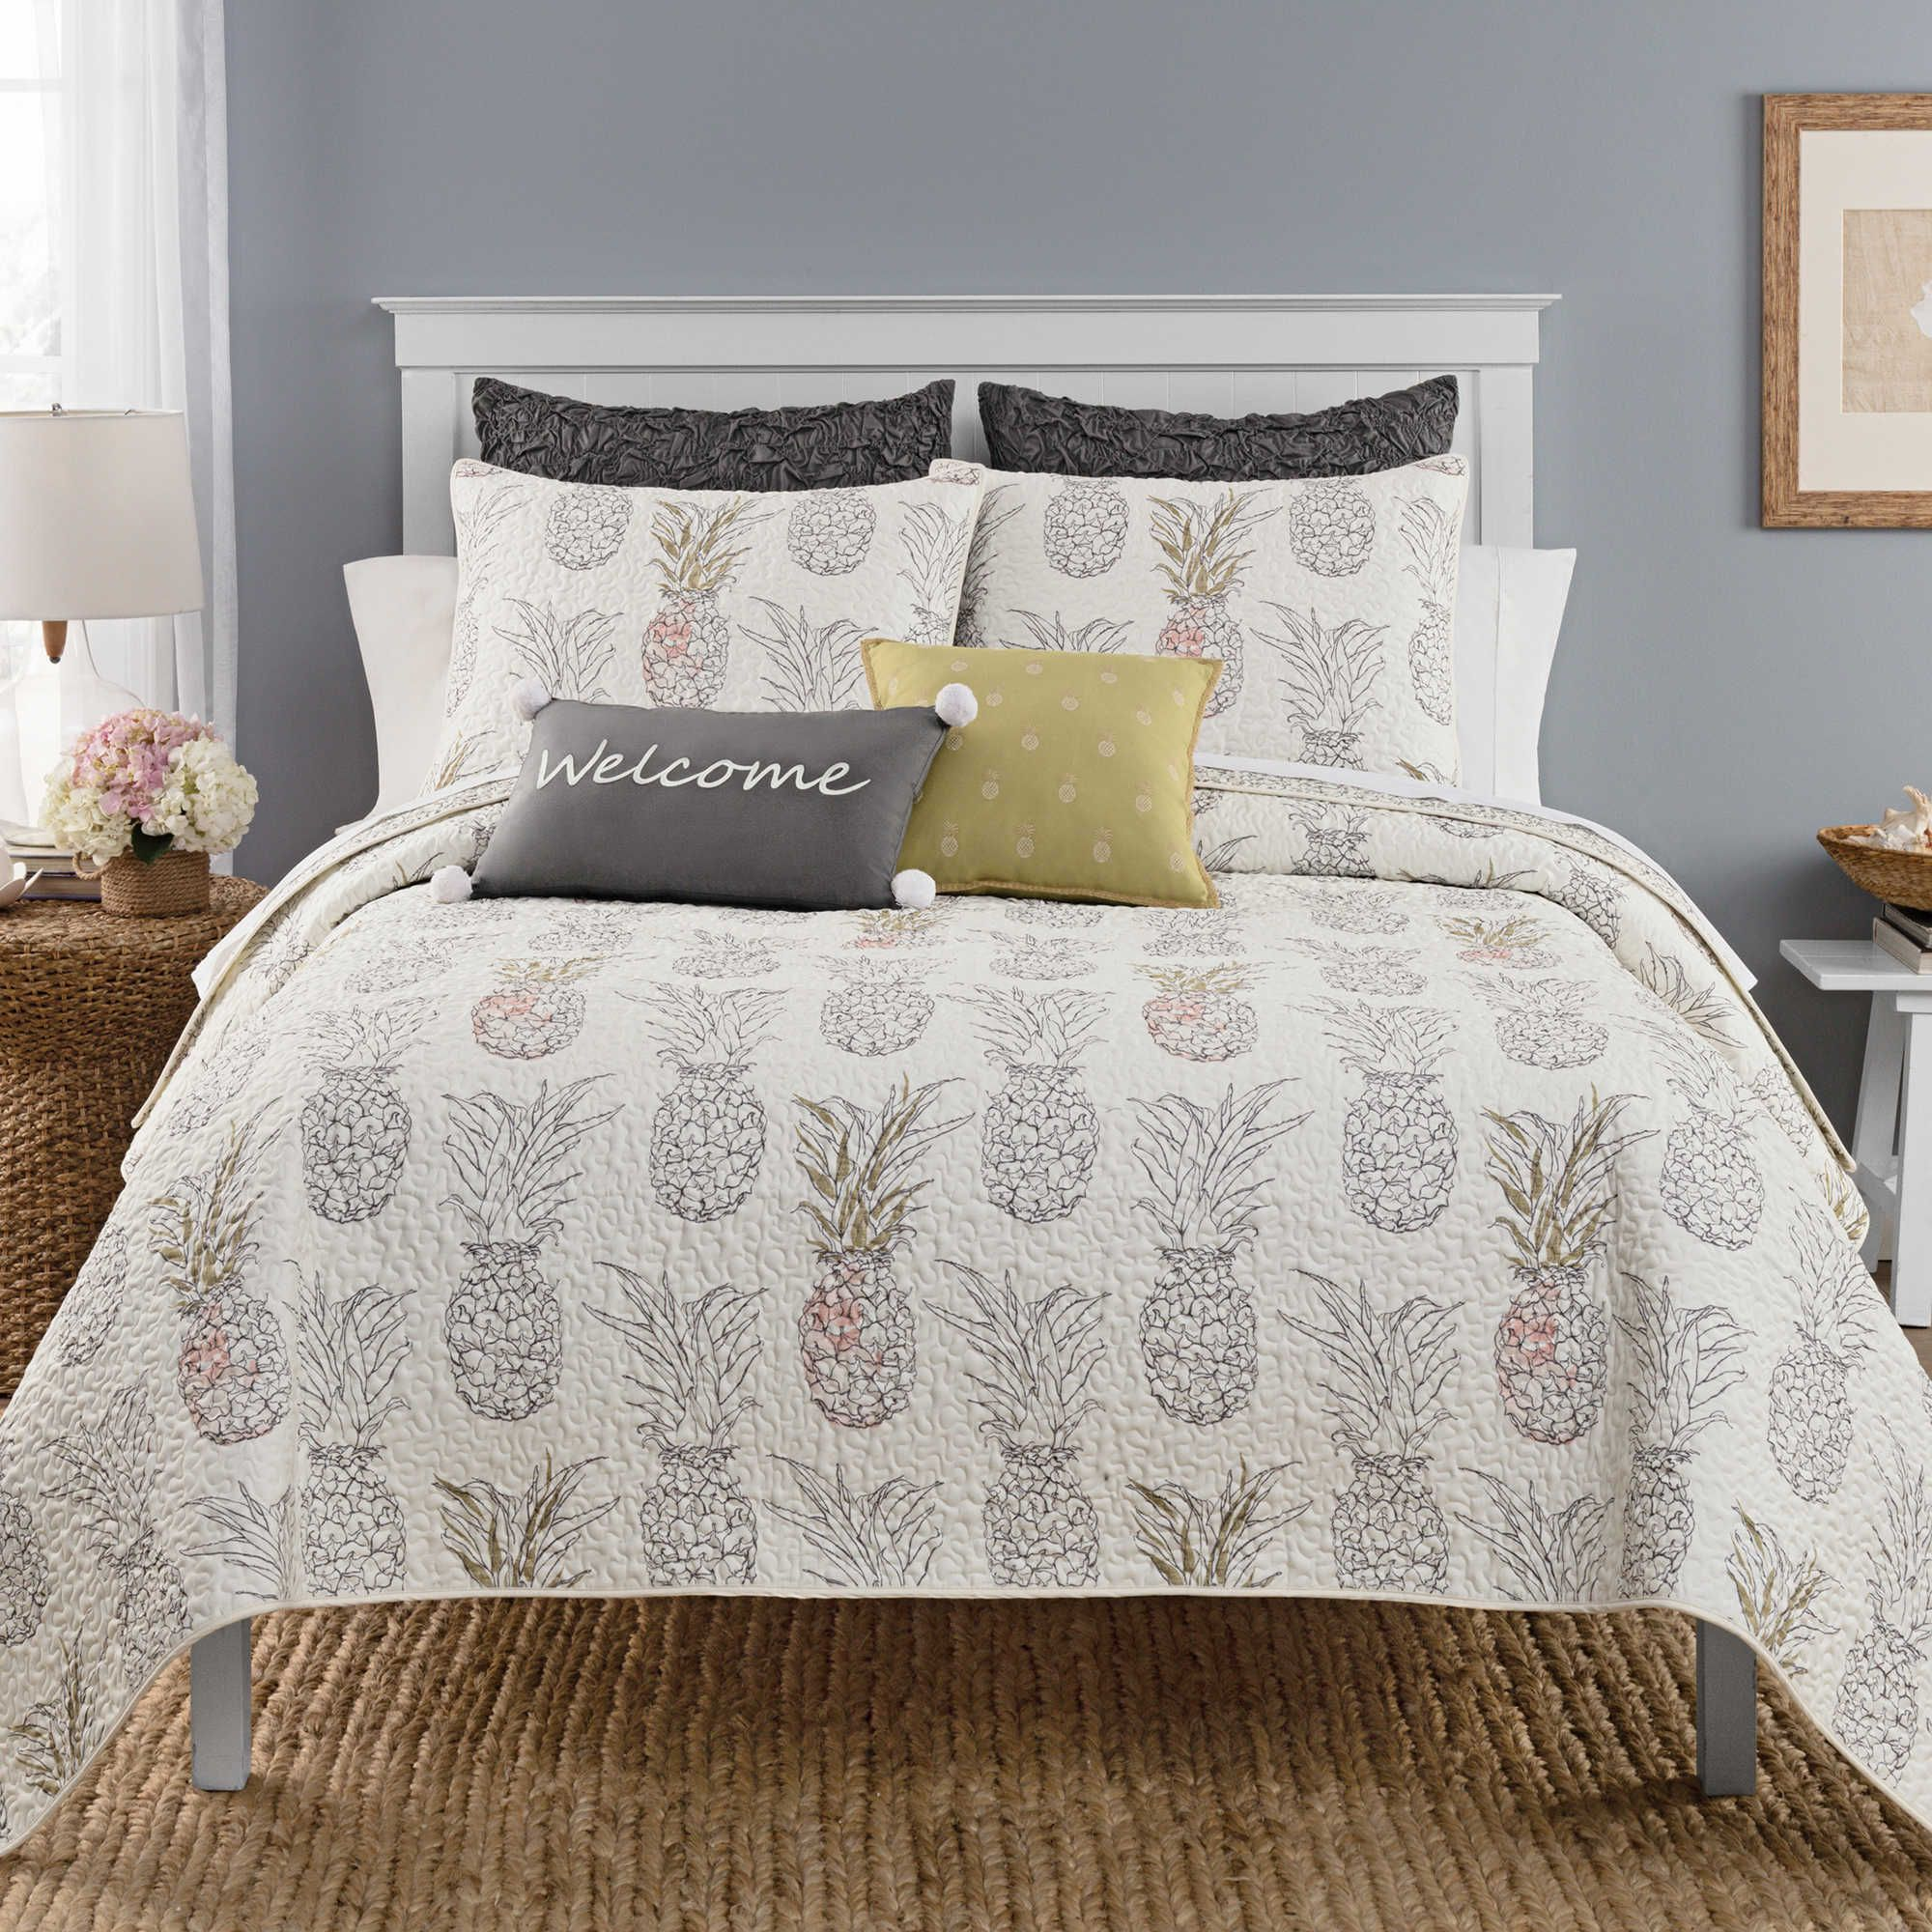 Heritage Breezes Pineapple Twin Quilt Pineapple Dreams